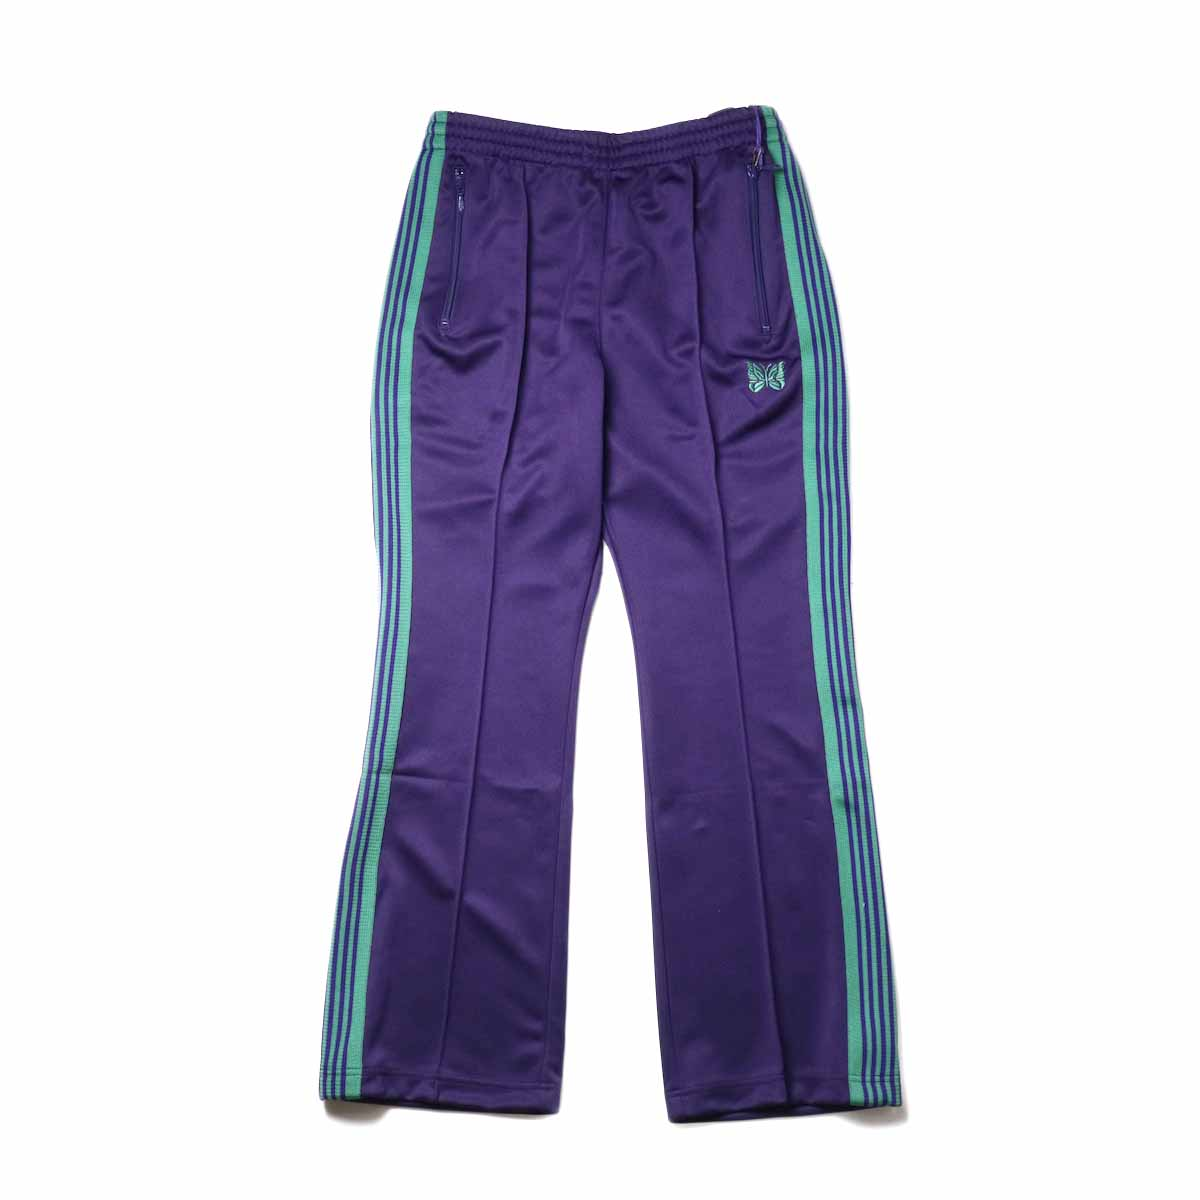 Needles / Boot-cut Track Pants -Poly Smooth (Eggplant)